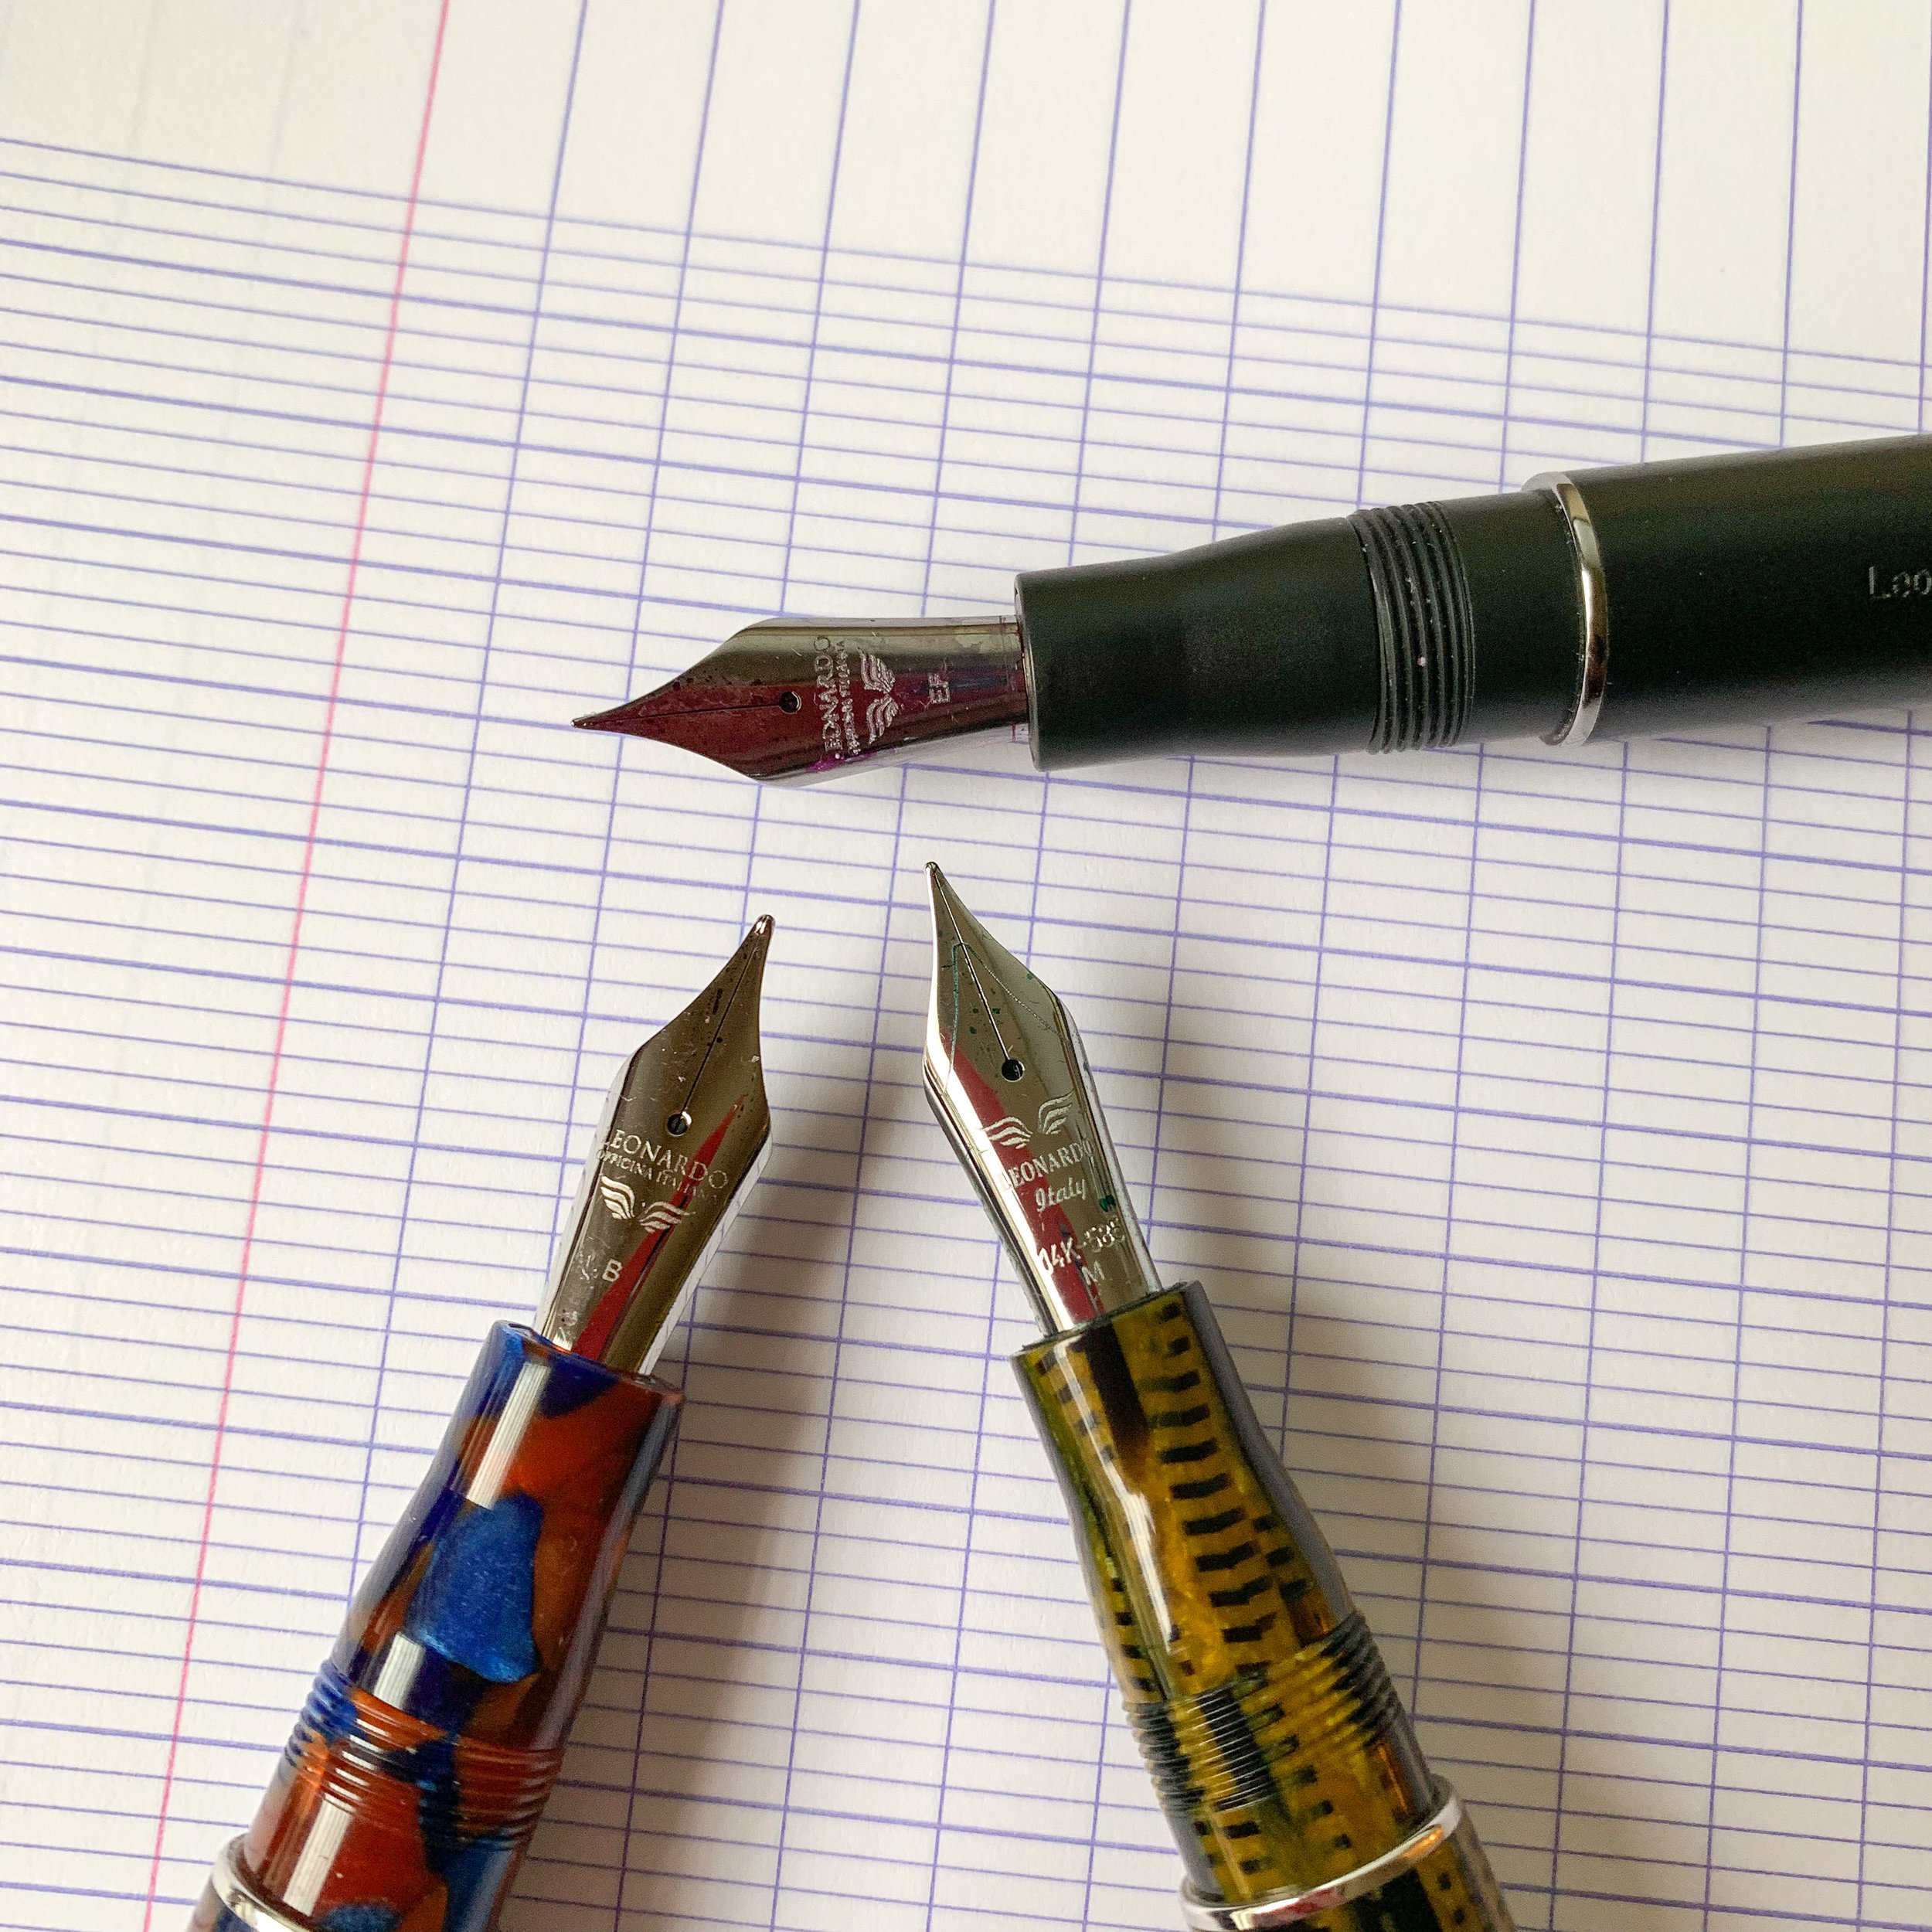 Leonardo Momento Zero nibs, ranging from the ruthenium-plated (top), to the stainless steel (bottom left) to the rhodium-plated gold (bottom right).